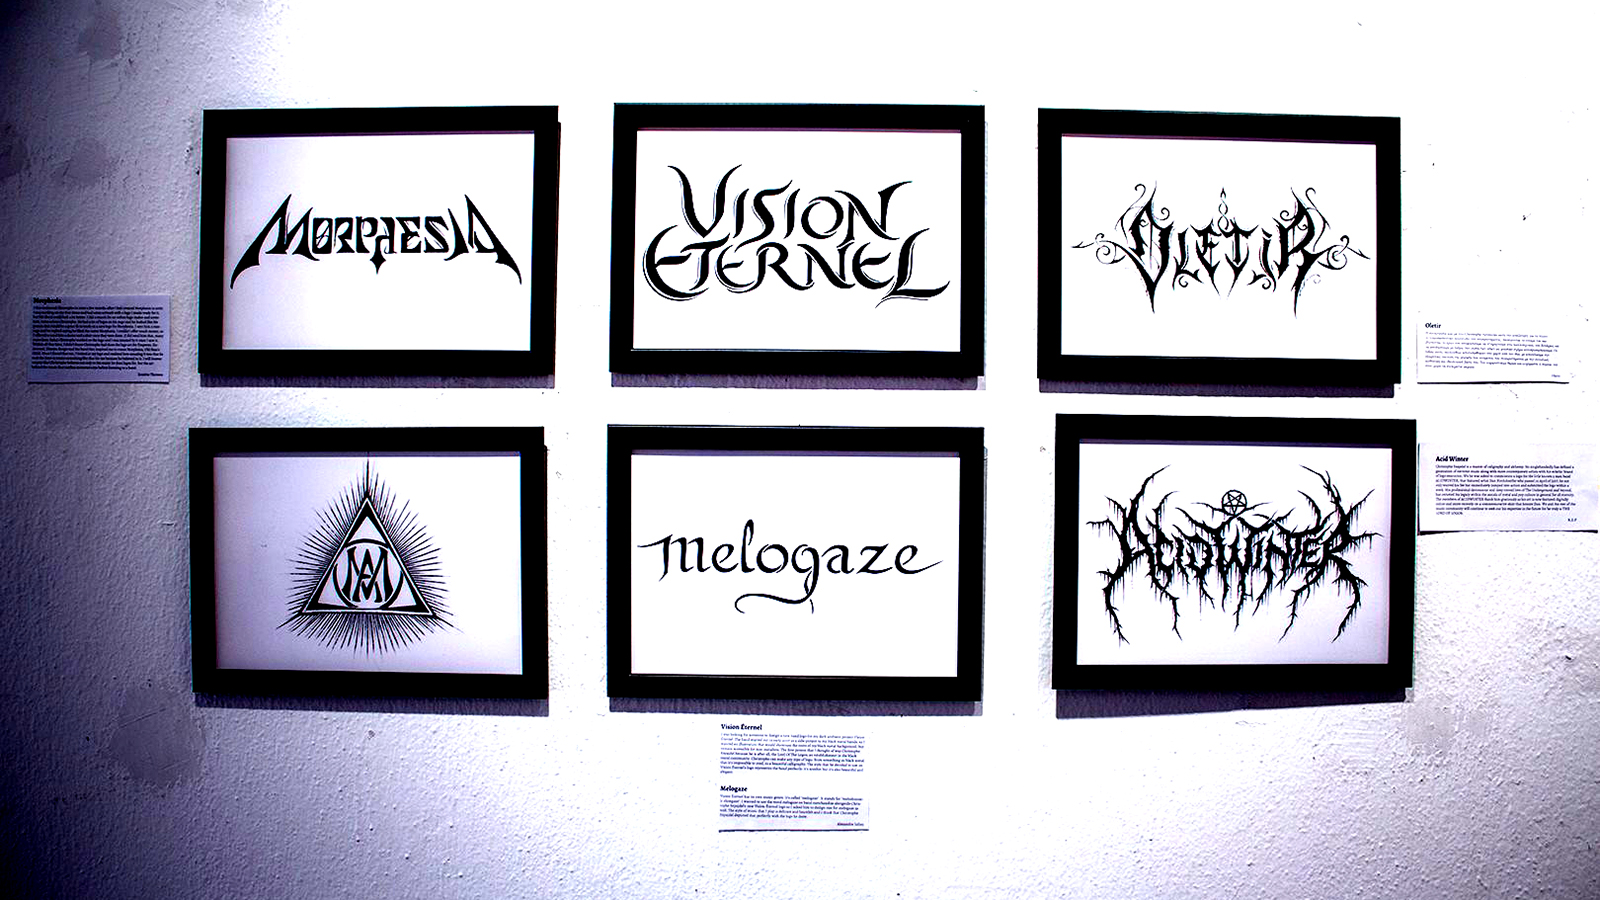 Vision Éternel Logo Displayed At Christophe Szpajdel's A Journey Into The Lost Homelands Exhibition